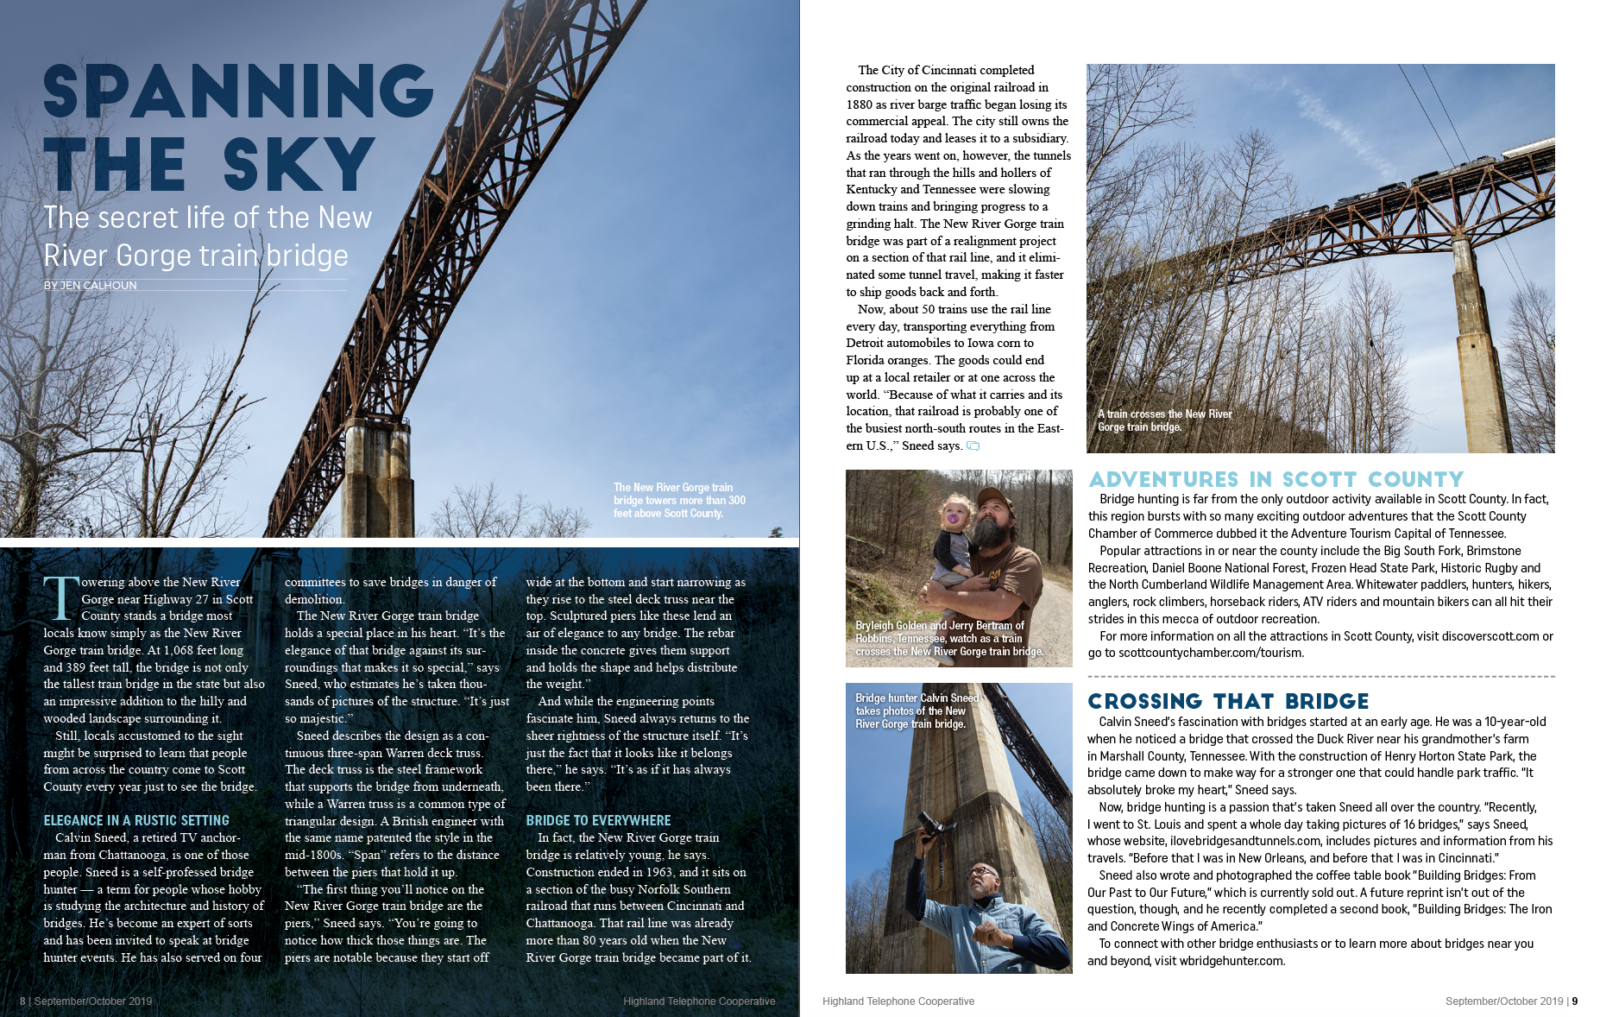 Spanning the Sky magazine article